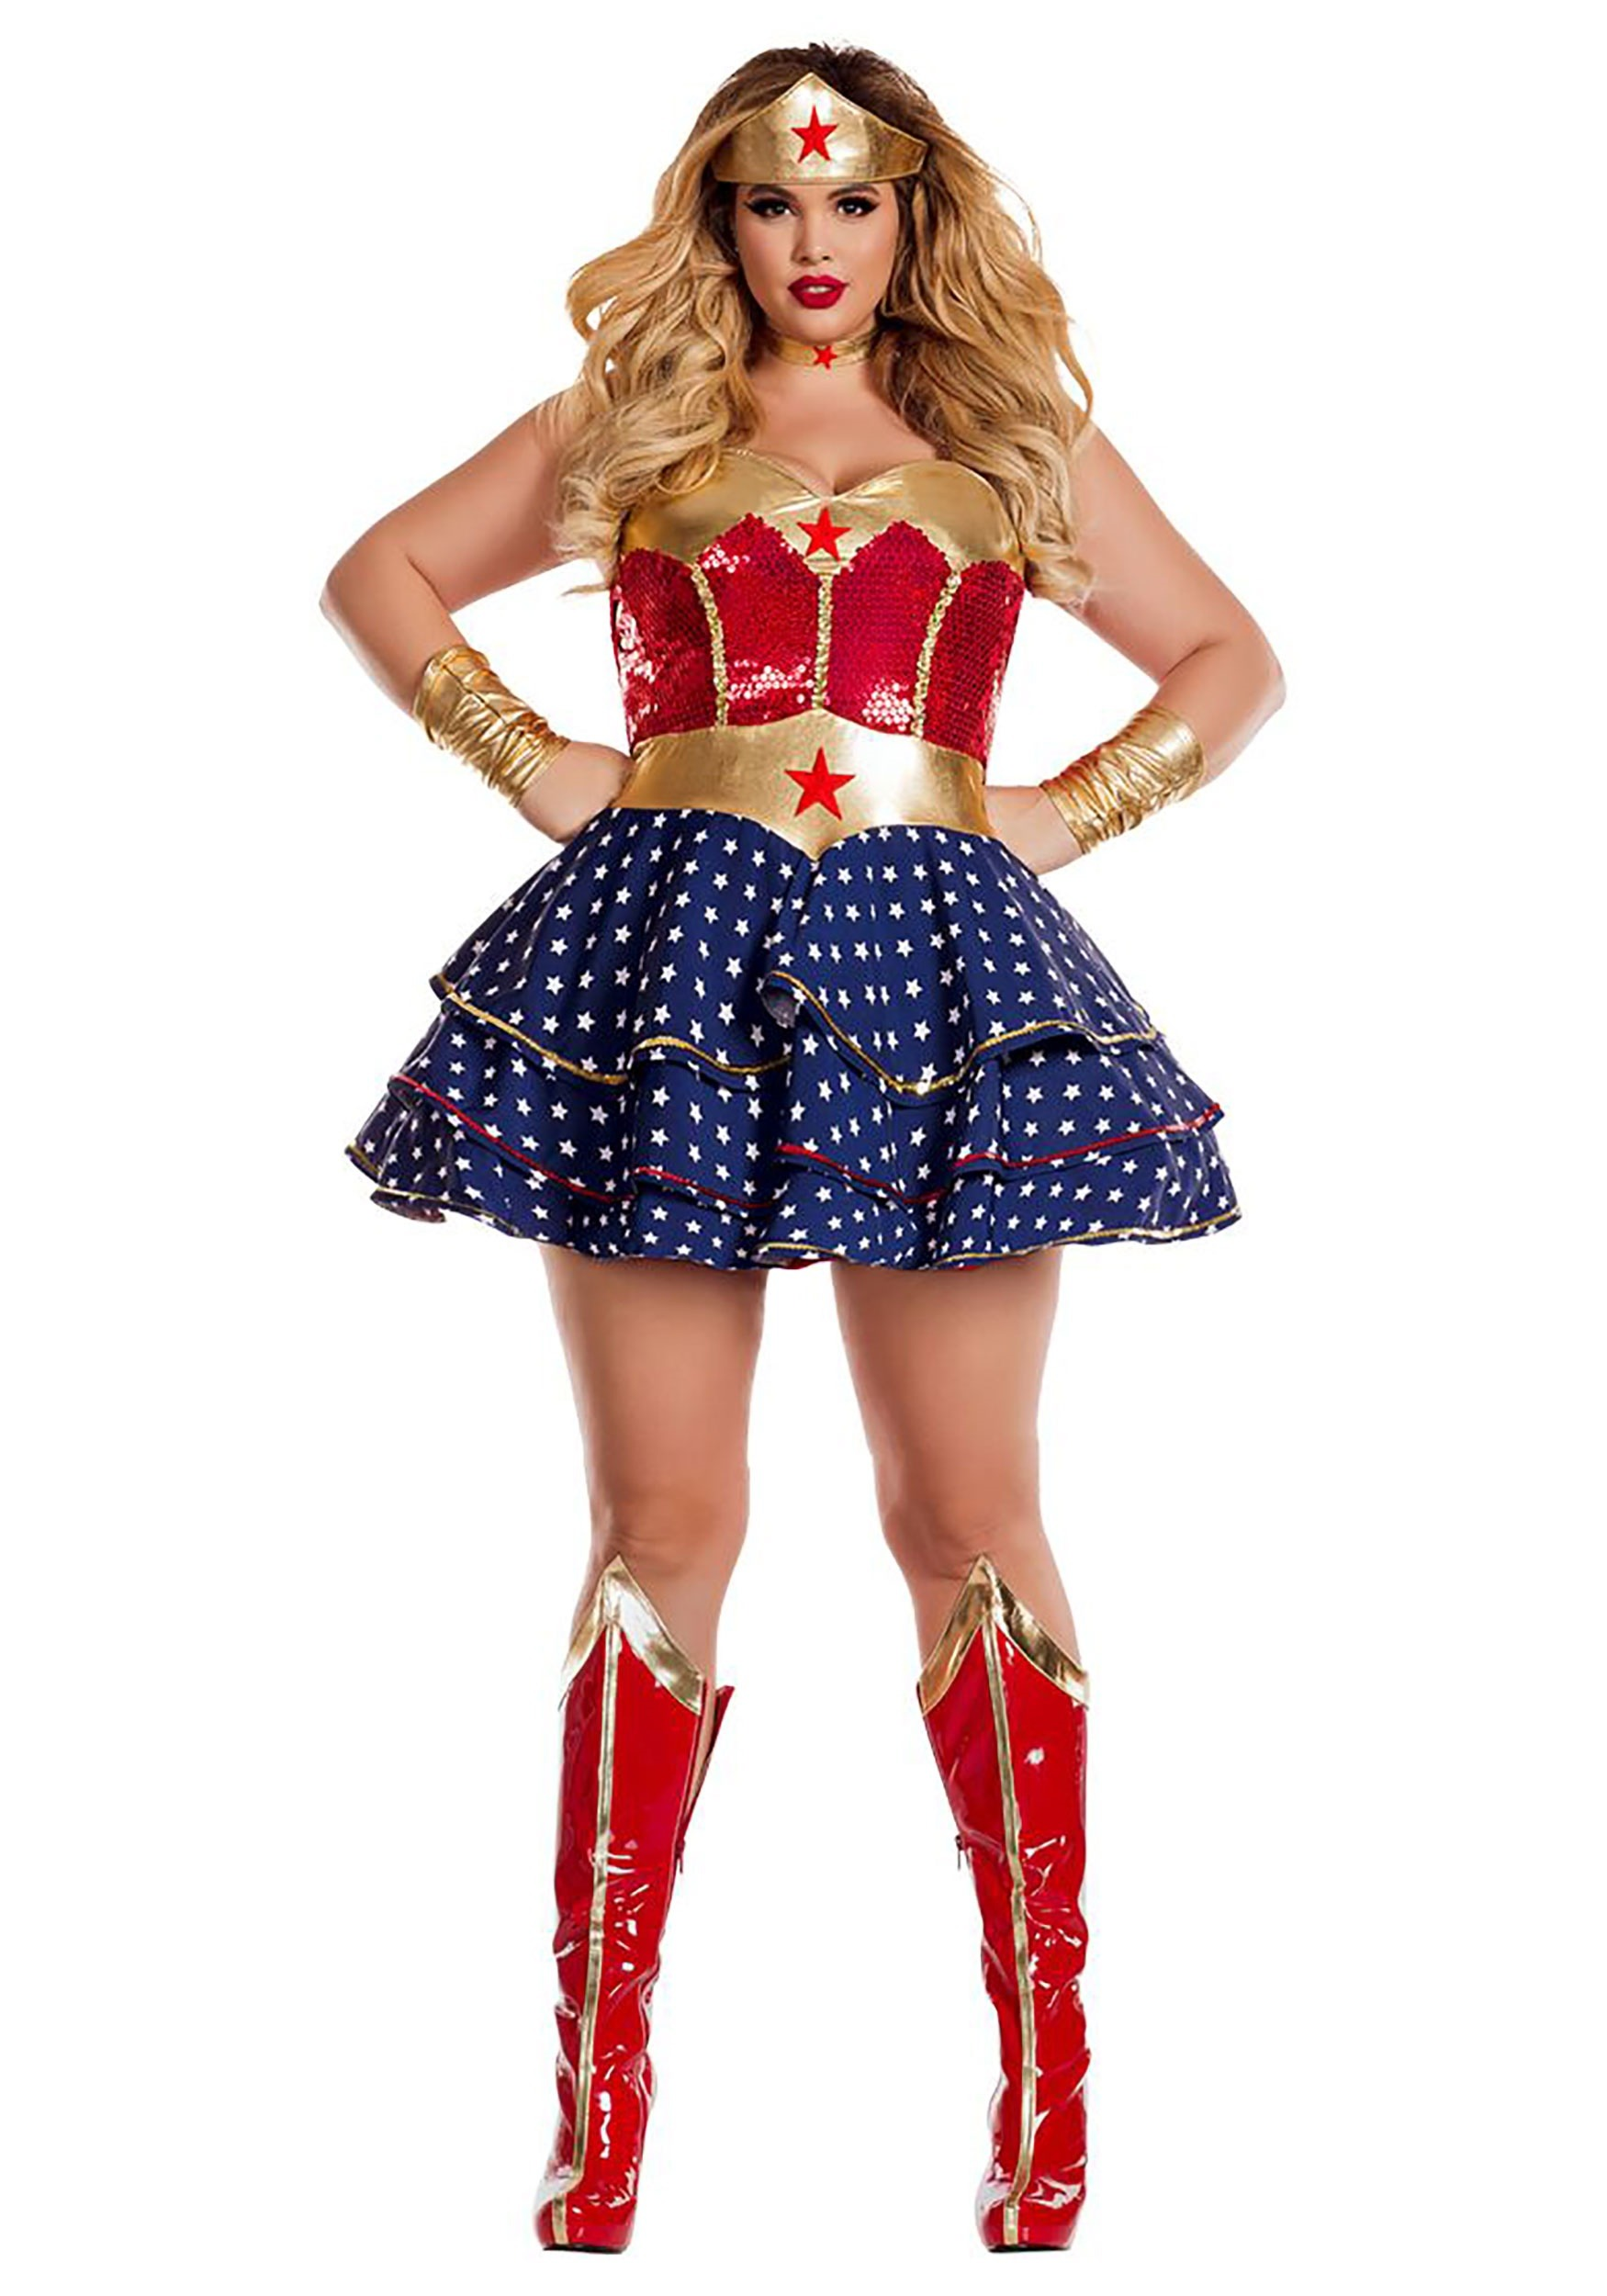 INOpets.com Anything for Pets Parents & Their Pets Wonderful Sweetheart Plus Size Costume for Women